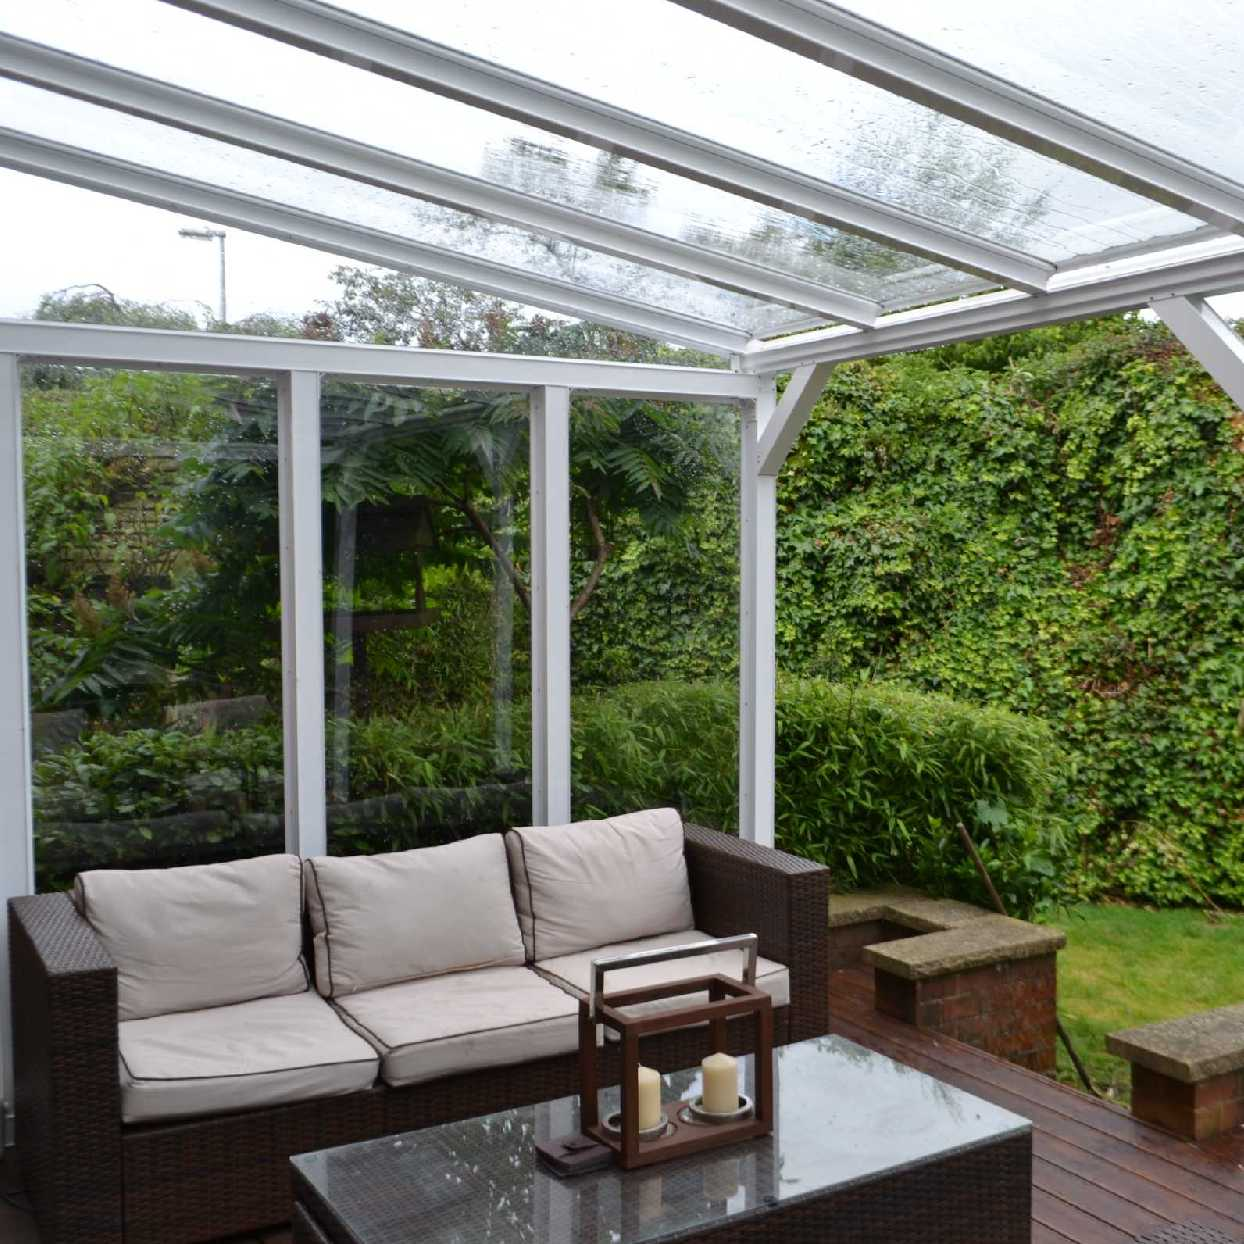 Great selection of Omega Smart Lean-To Canopy with 16mm Polycarbonate Glazing - 6.0m (W) x 4.0m (P), (3) Supporting Posts